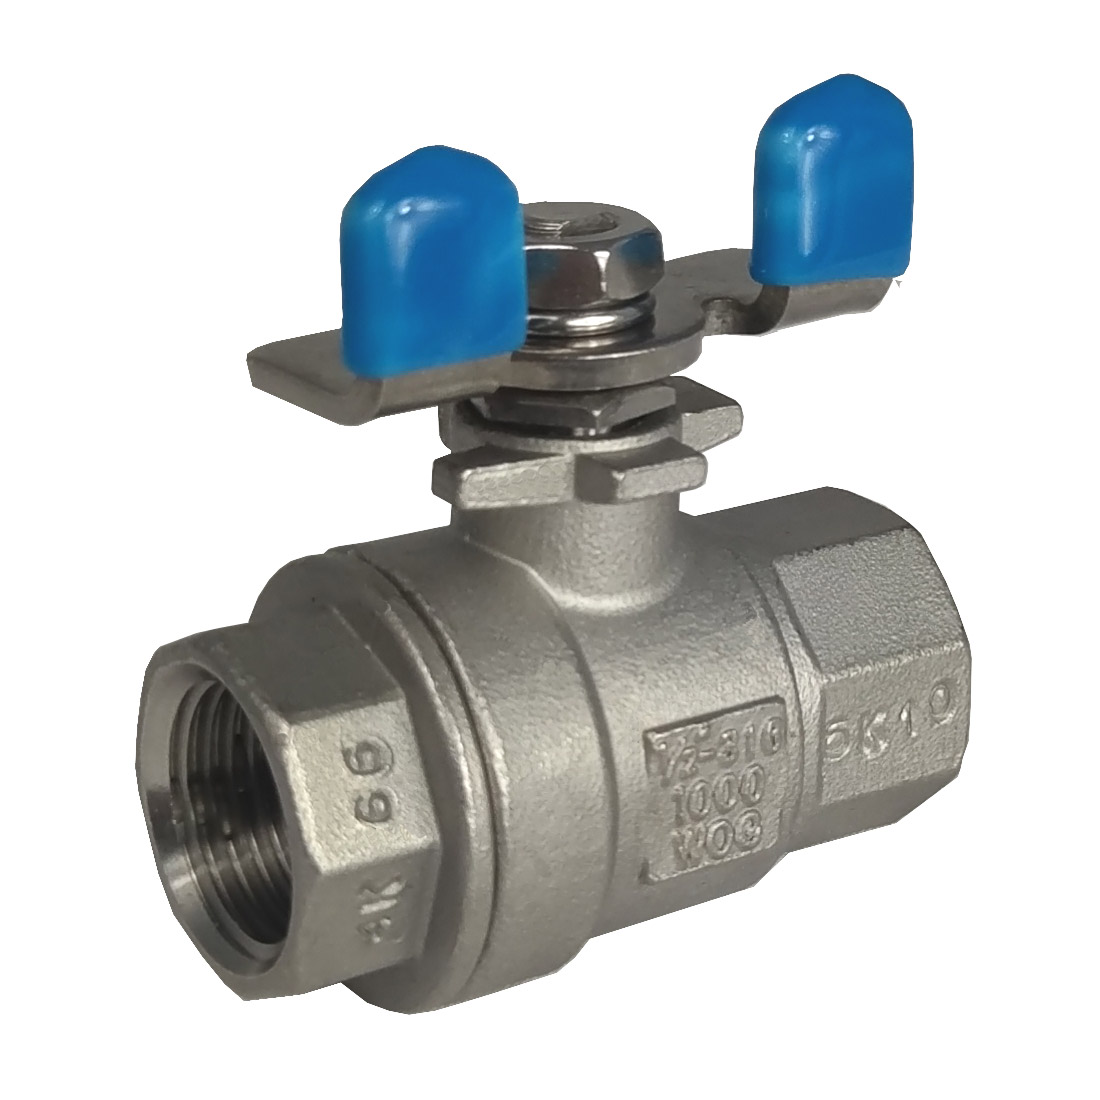 2-piece full port ball valve 1000 psi  butterfly handle